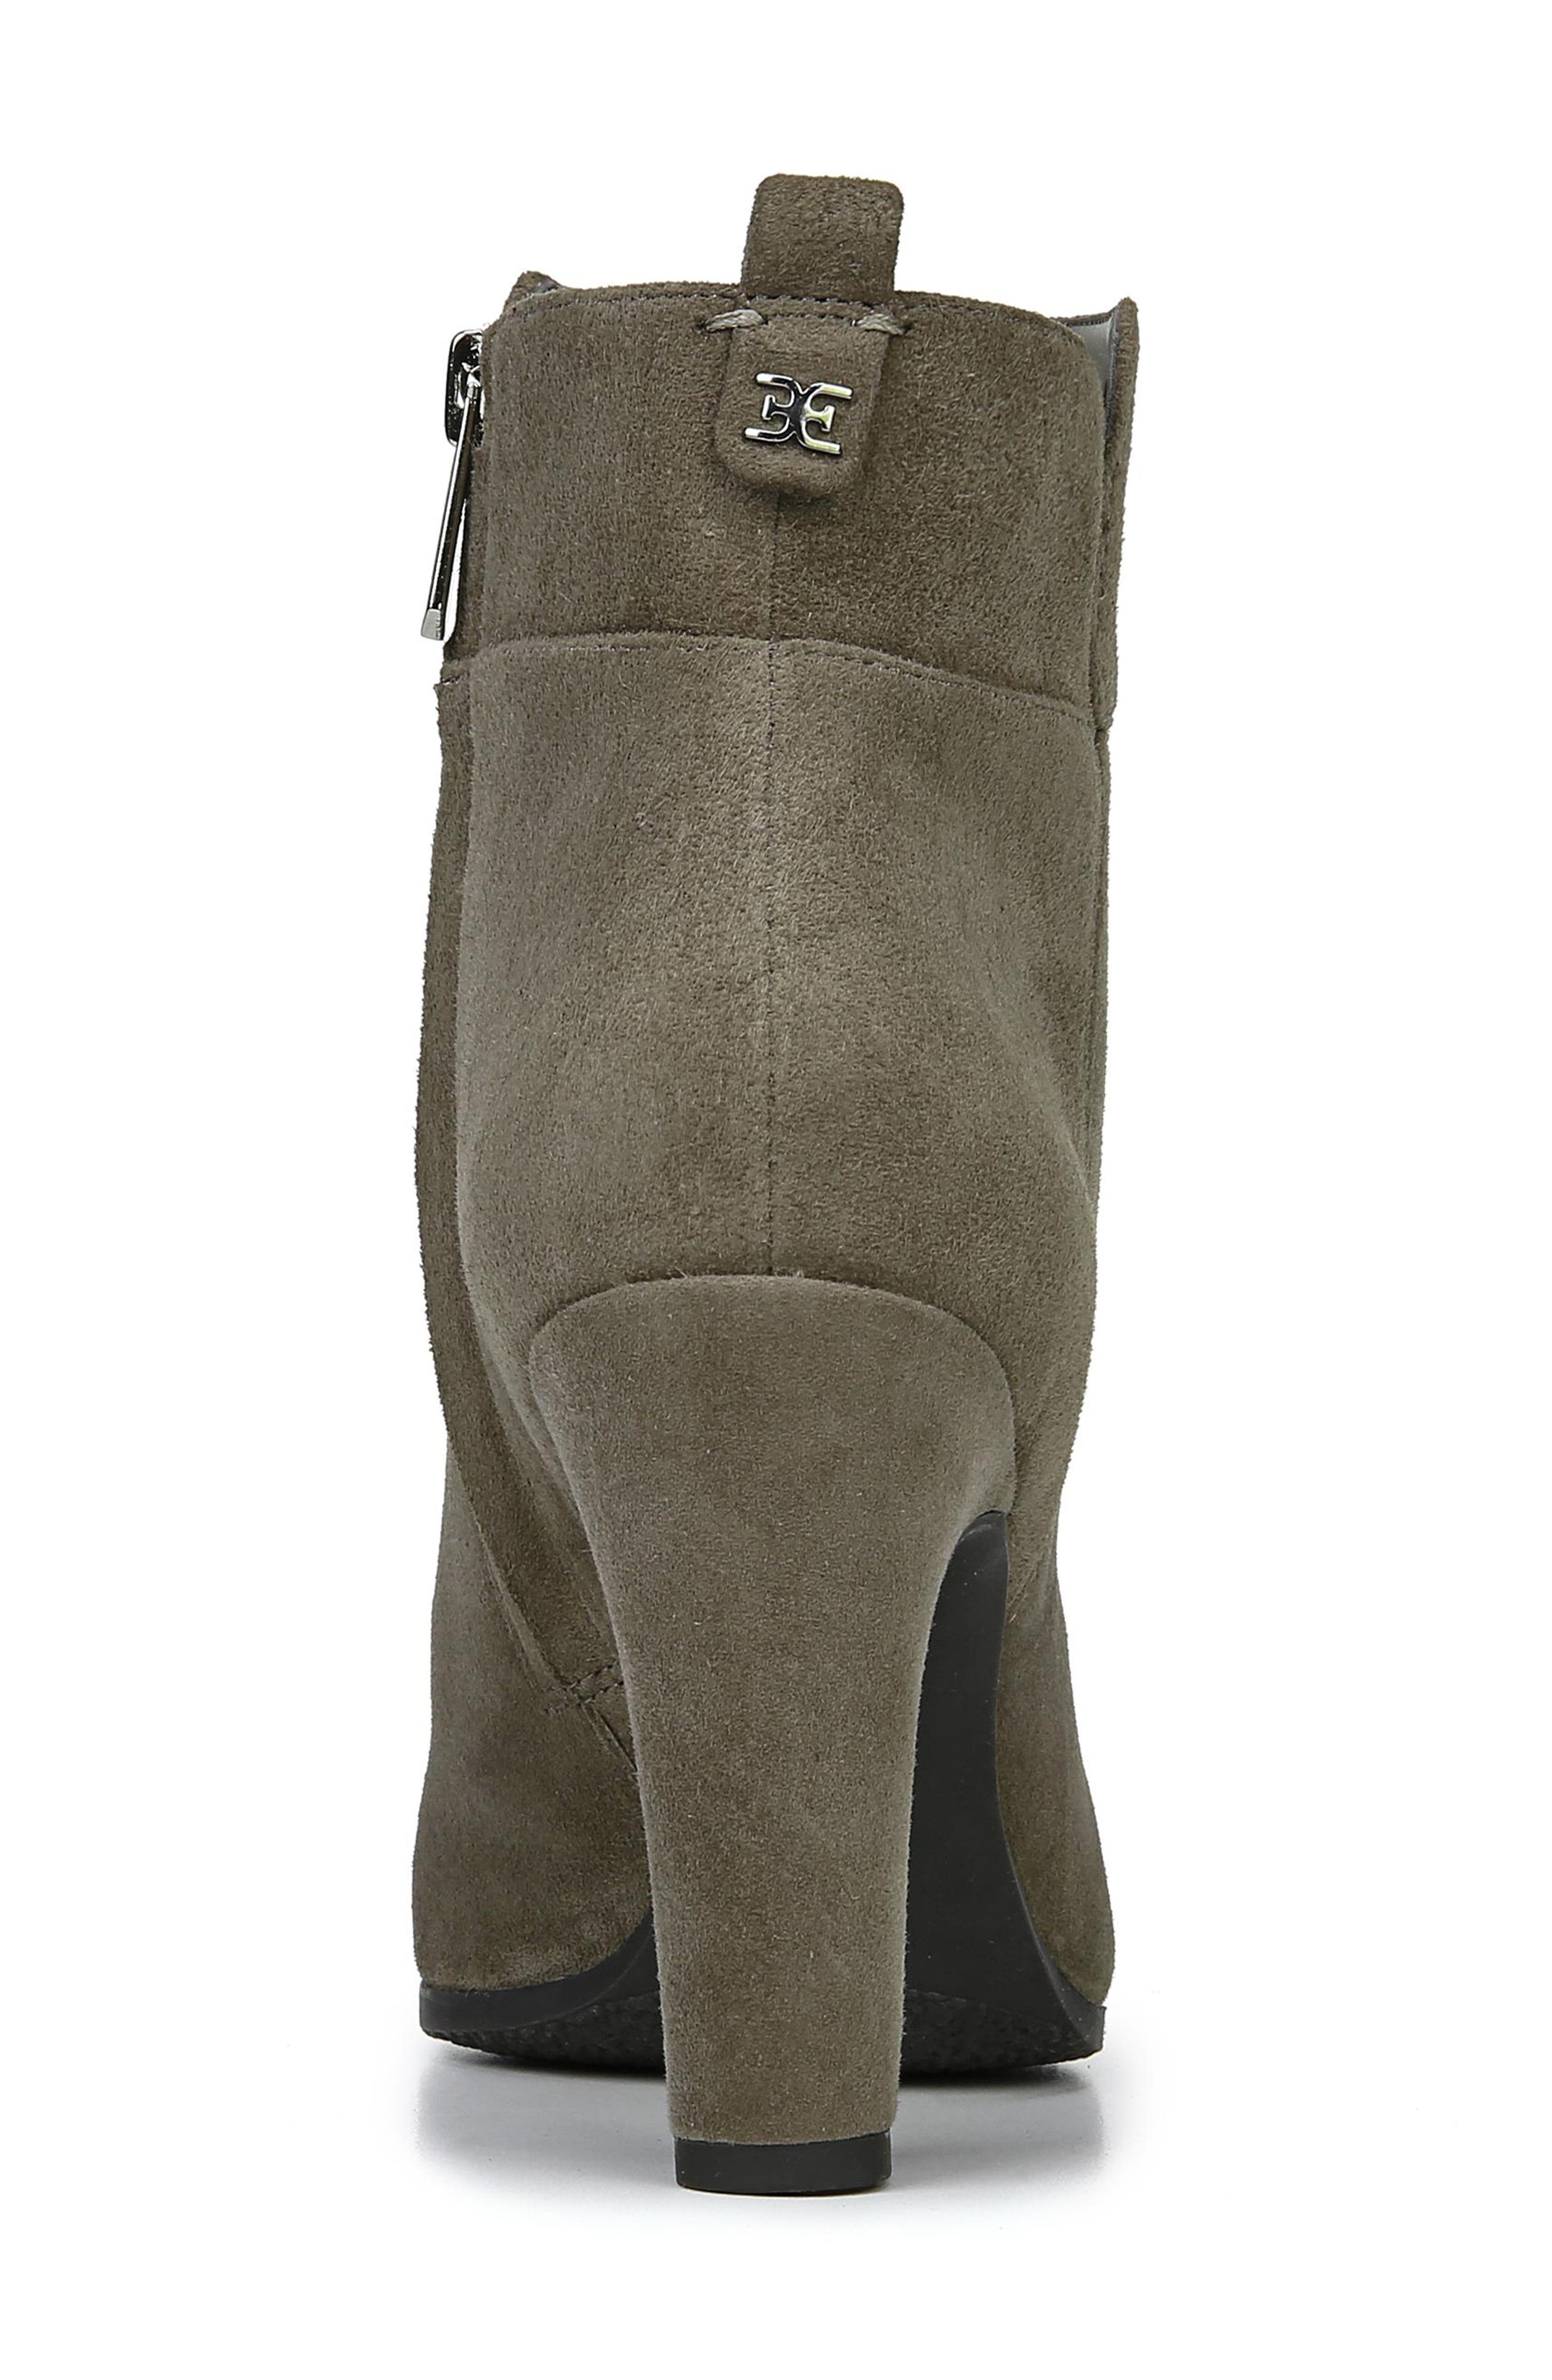 Sianna Bootie,                             Alternate thumbnail 7, color,                             FLINT GREY SUEDE